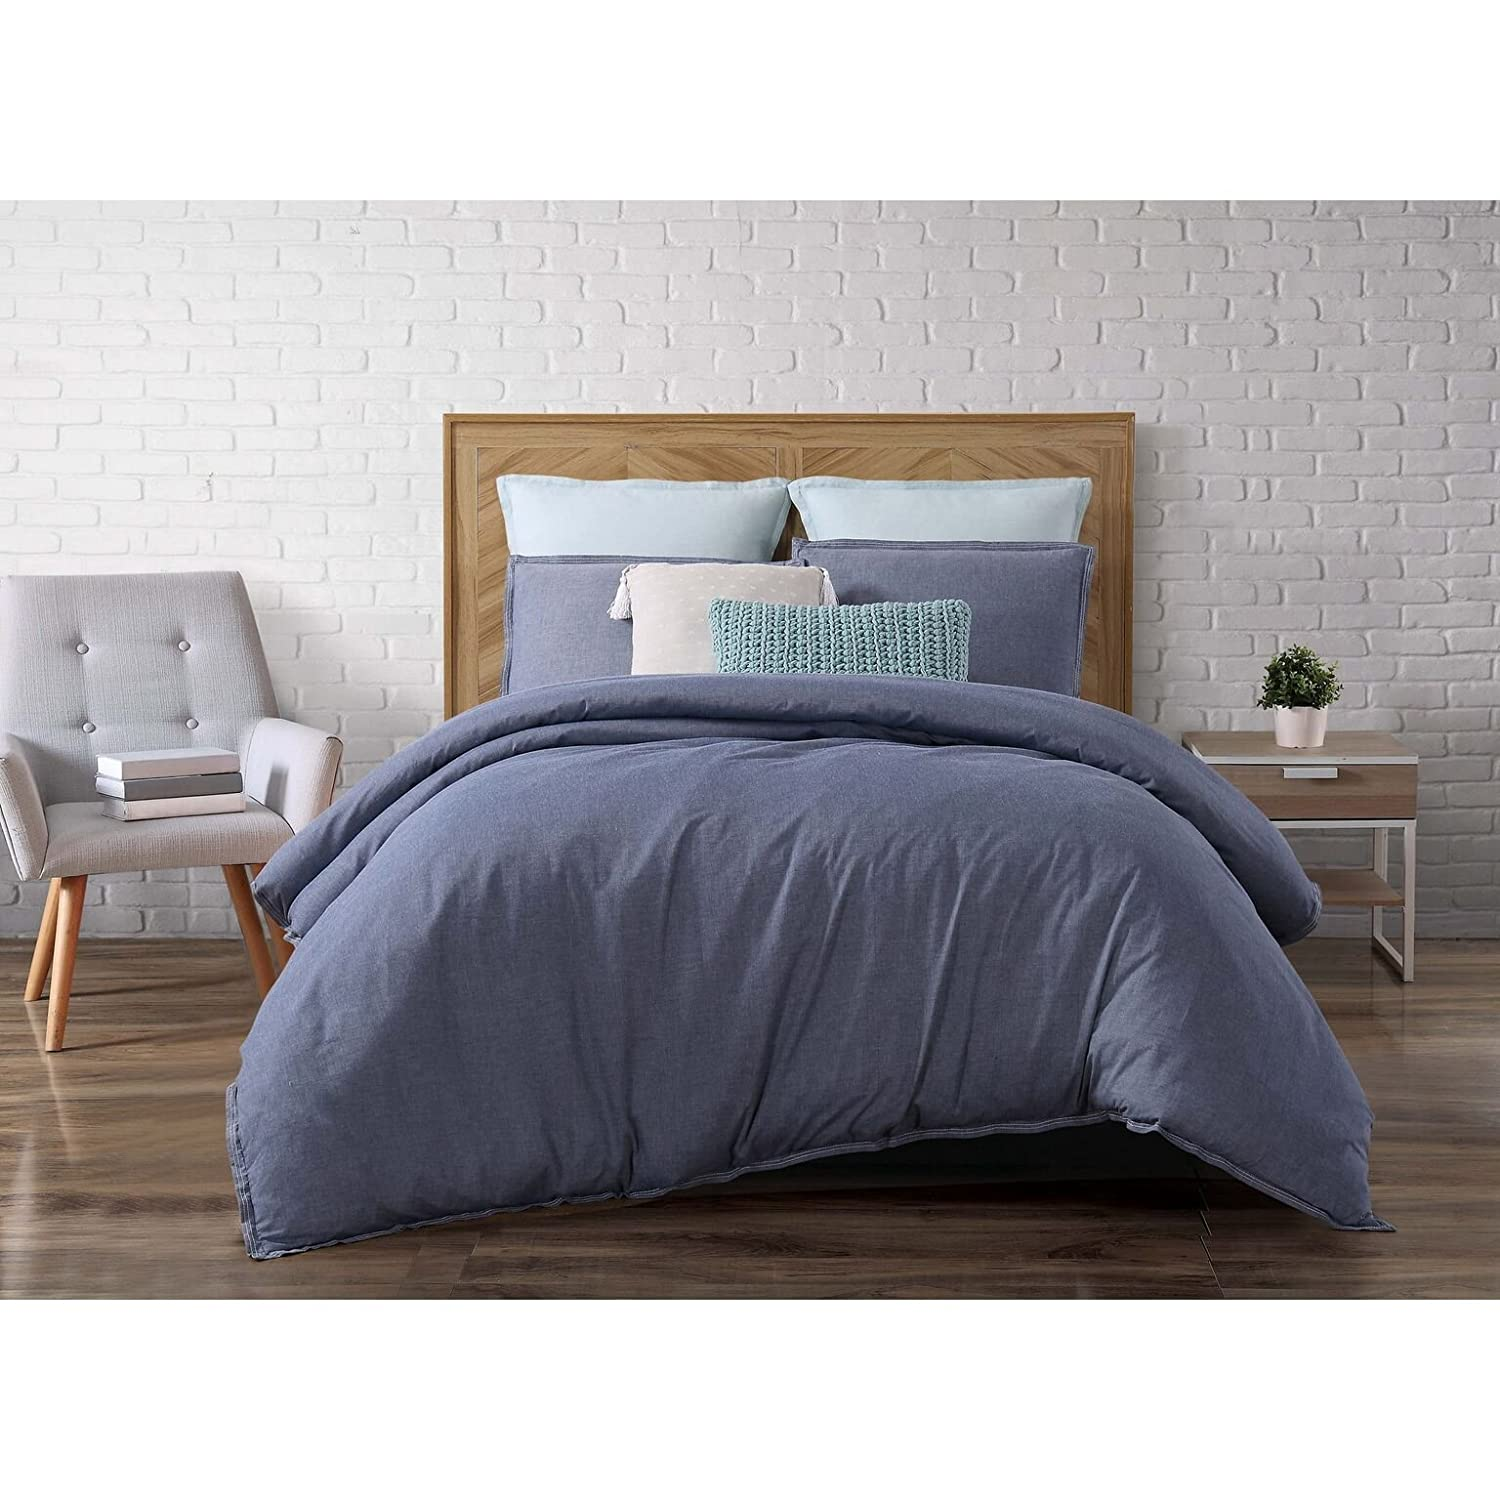 border one gentle product plus chambray frame index cover collections glam duvet blue